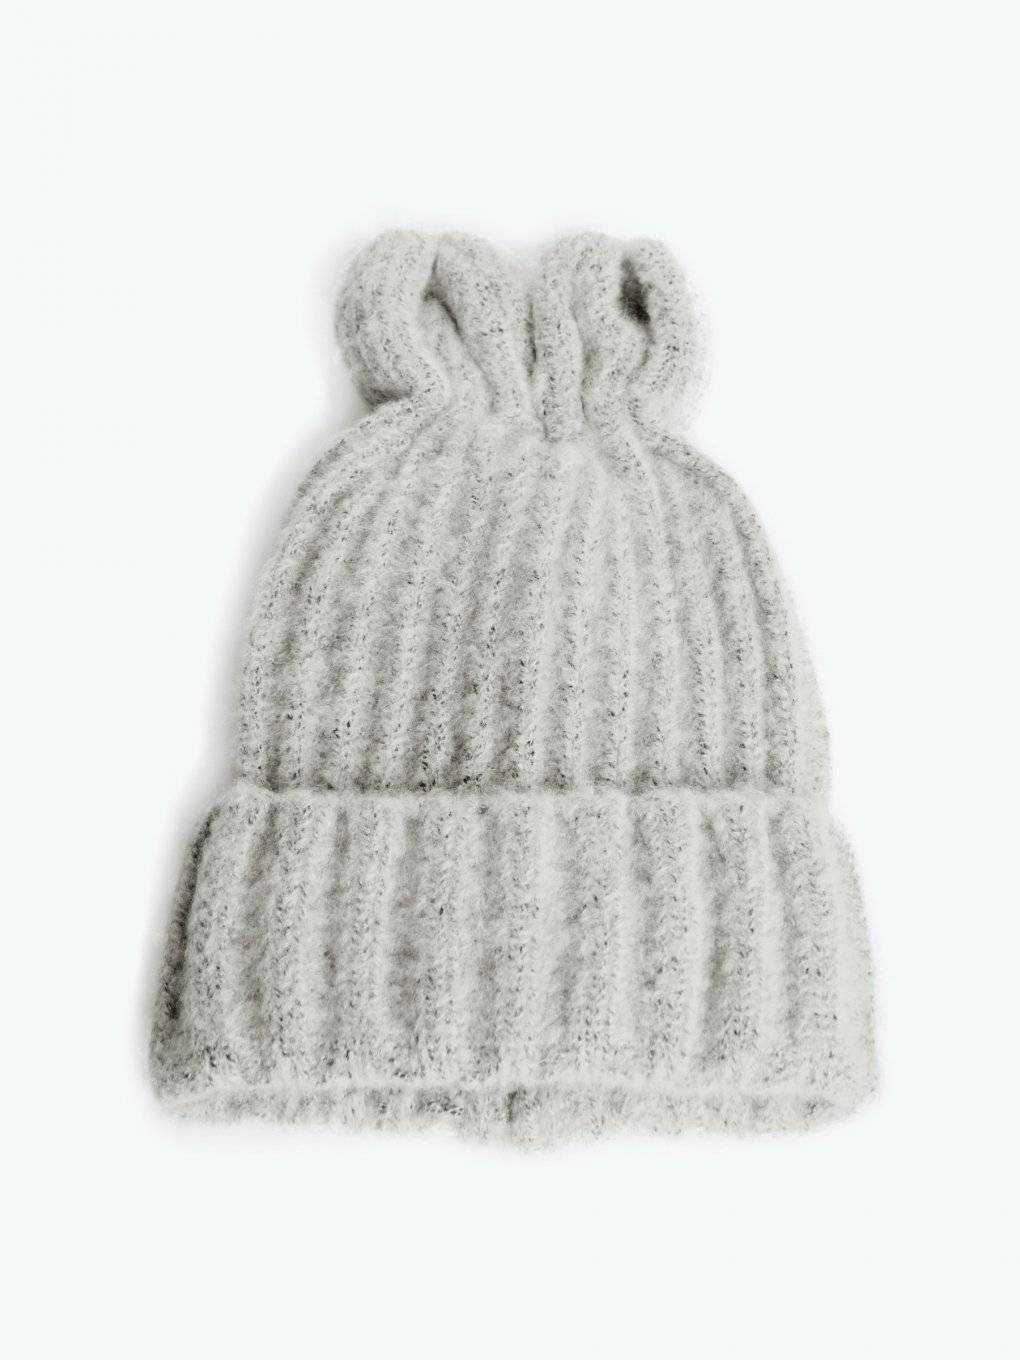 Knitted beanie with ears